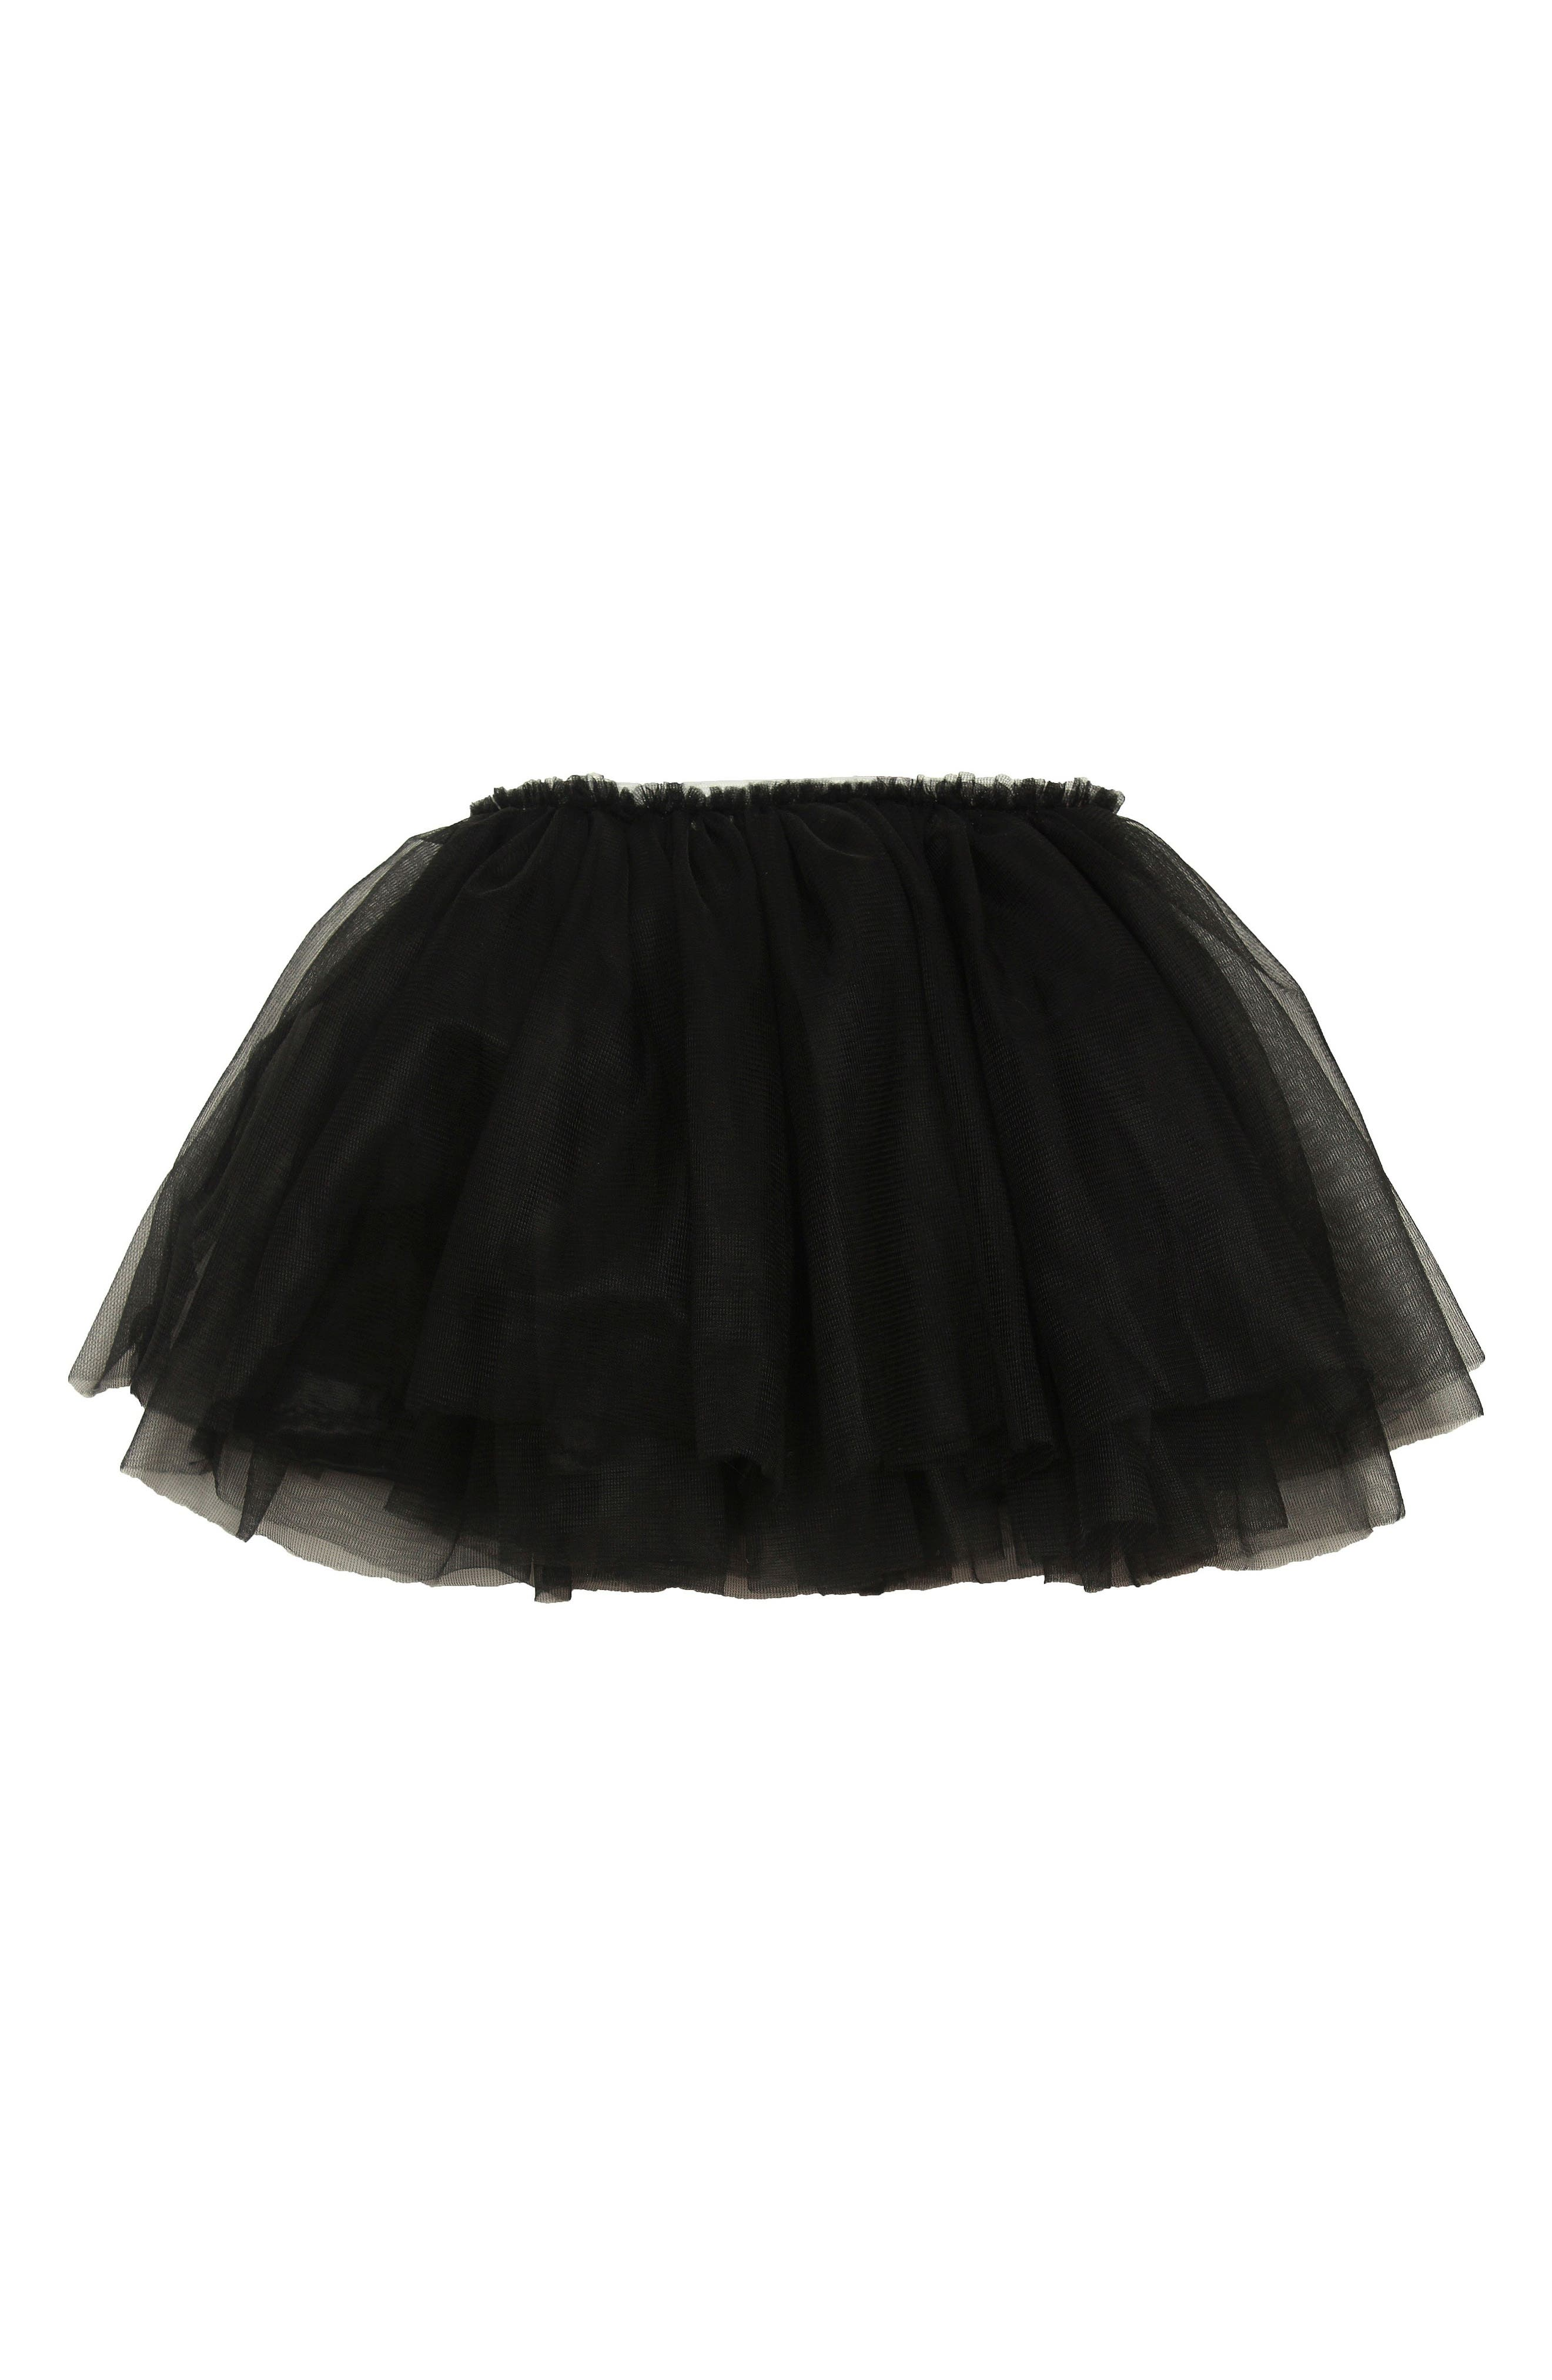 Alternate Image 2  - Popatu Gold Star Tutu Skirt (Toddler Girls & Little Girls)